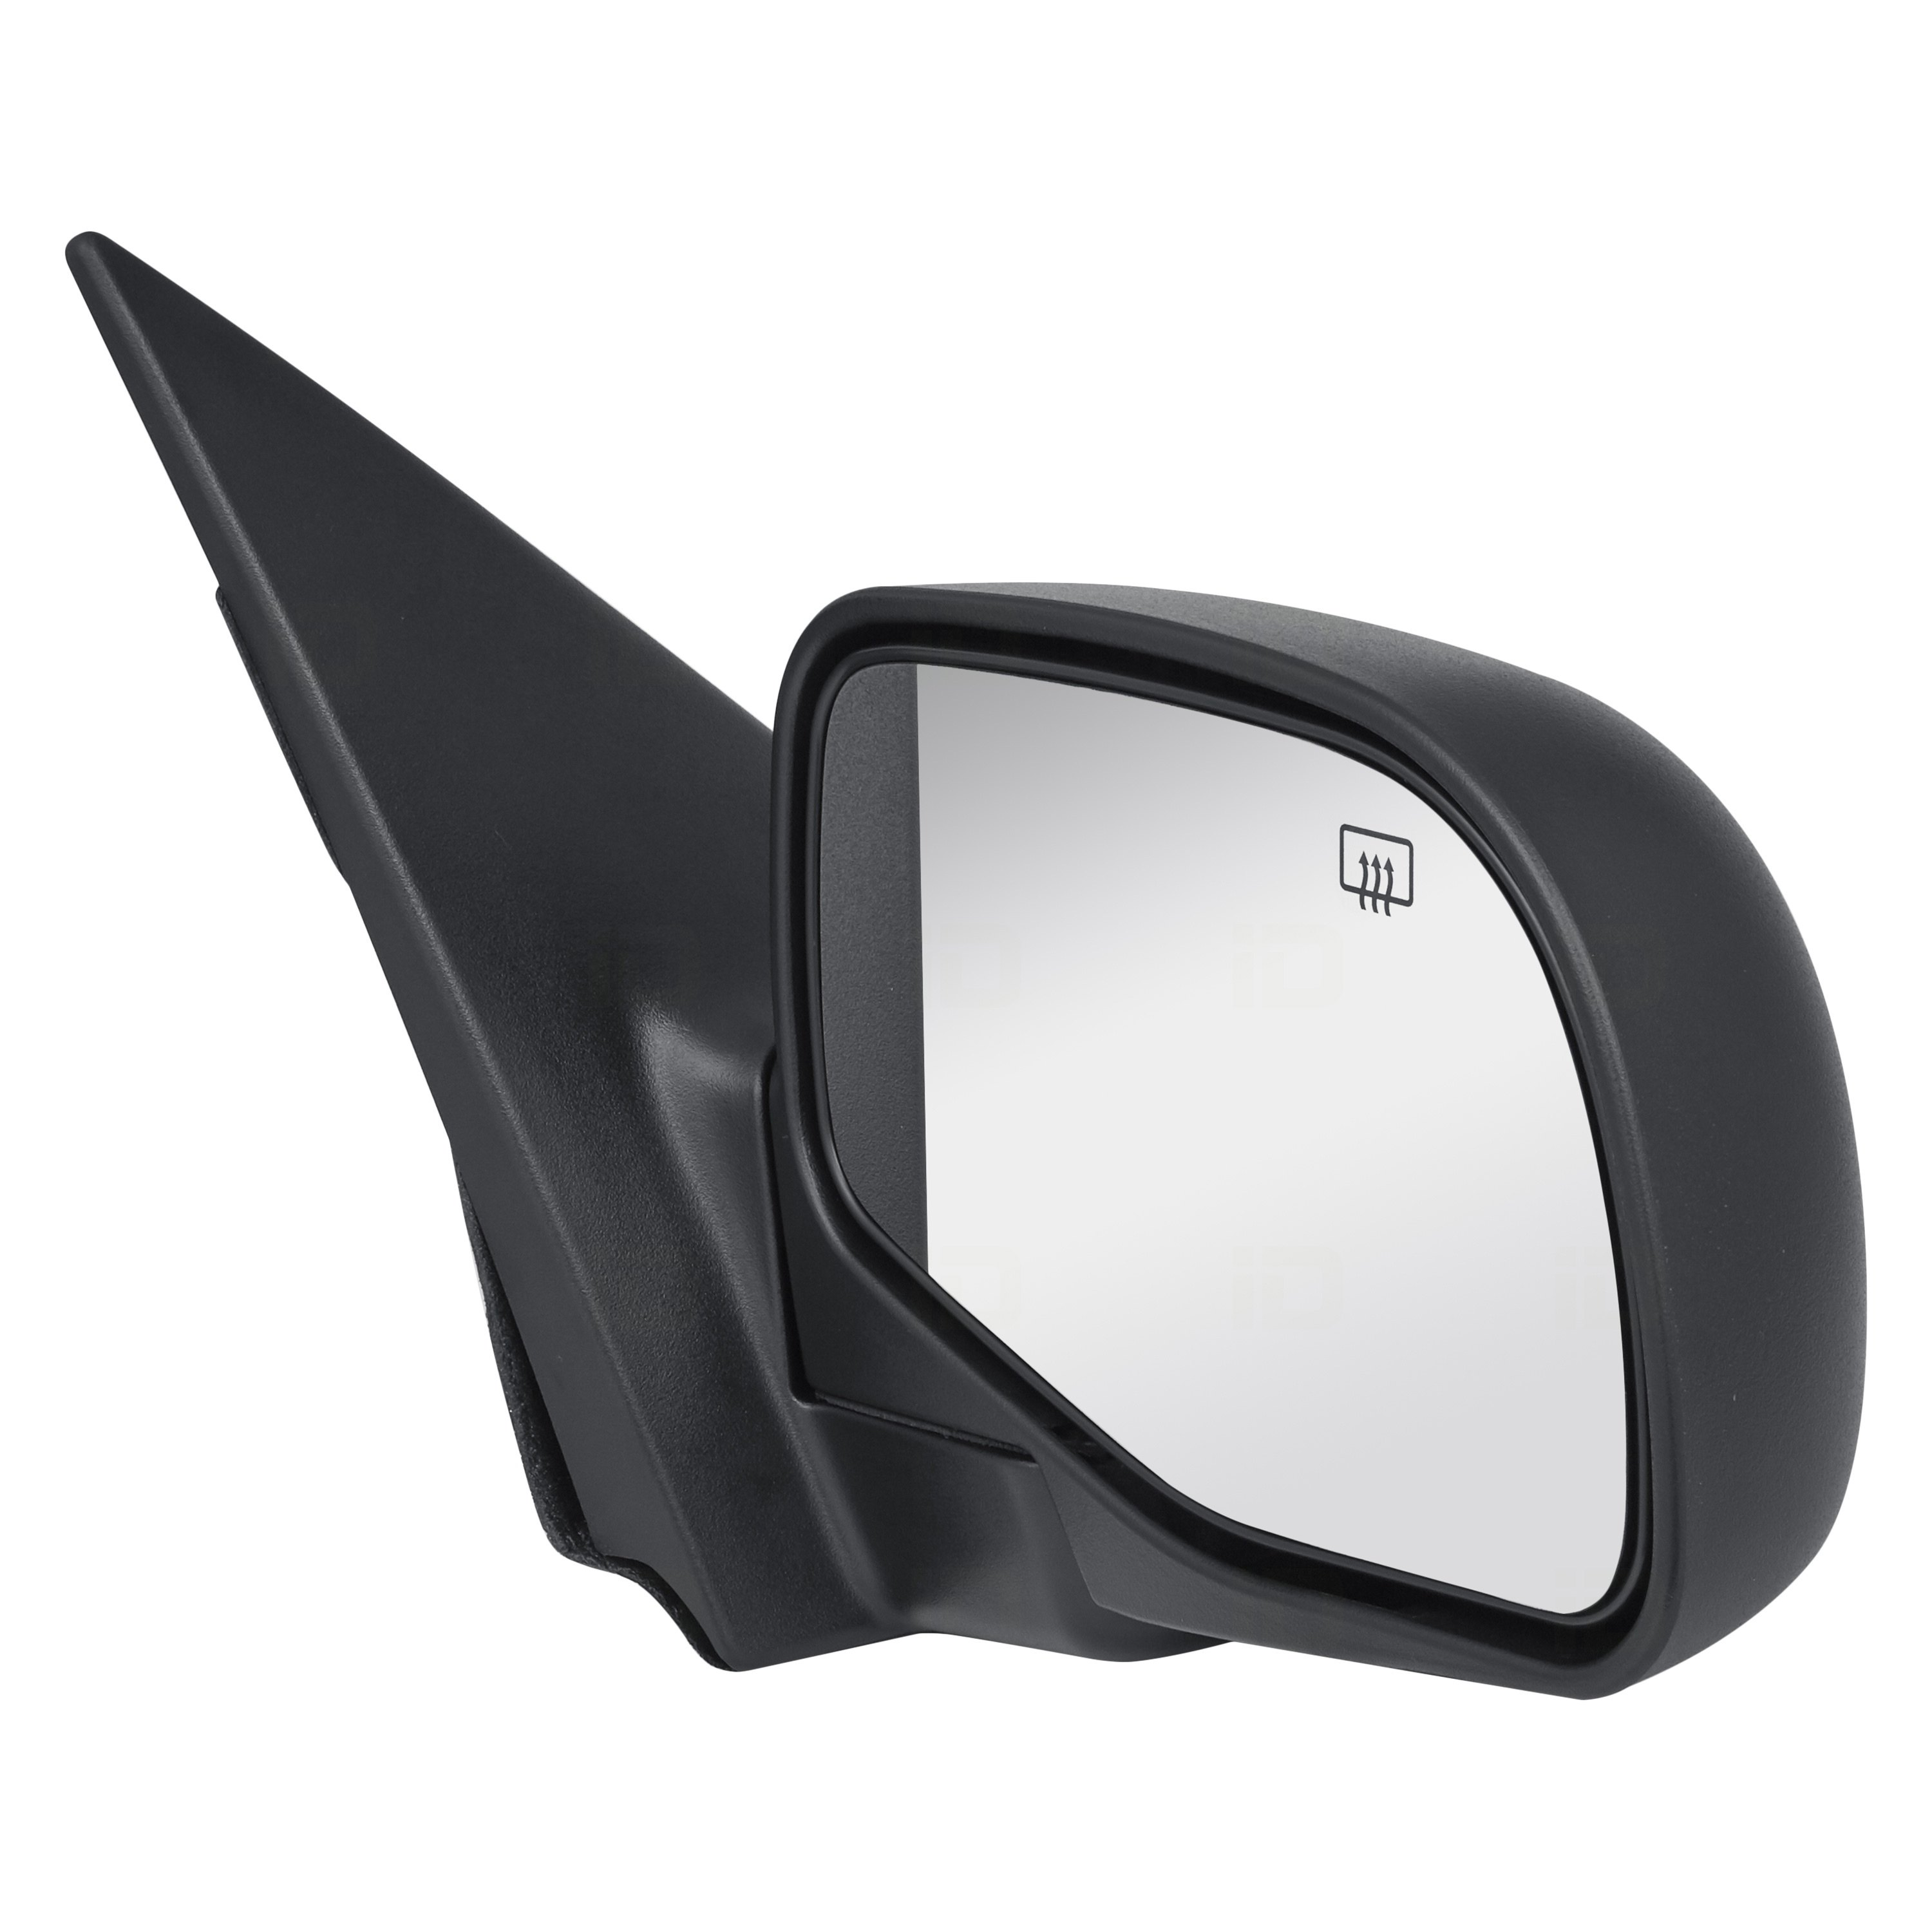 New Passenger Side Mirror For Mercury Mountaineer 2002-2005 FO1321211